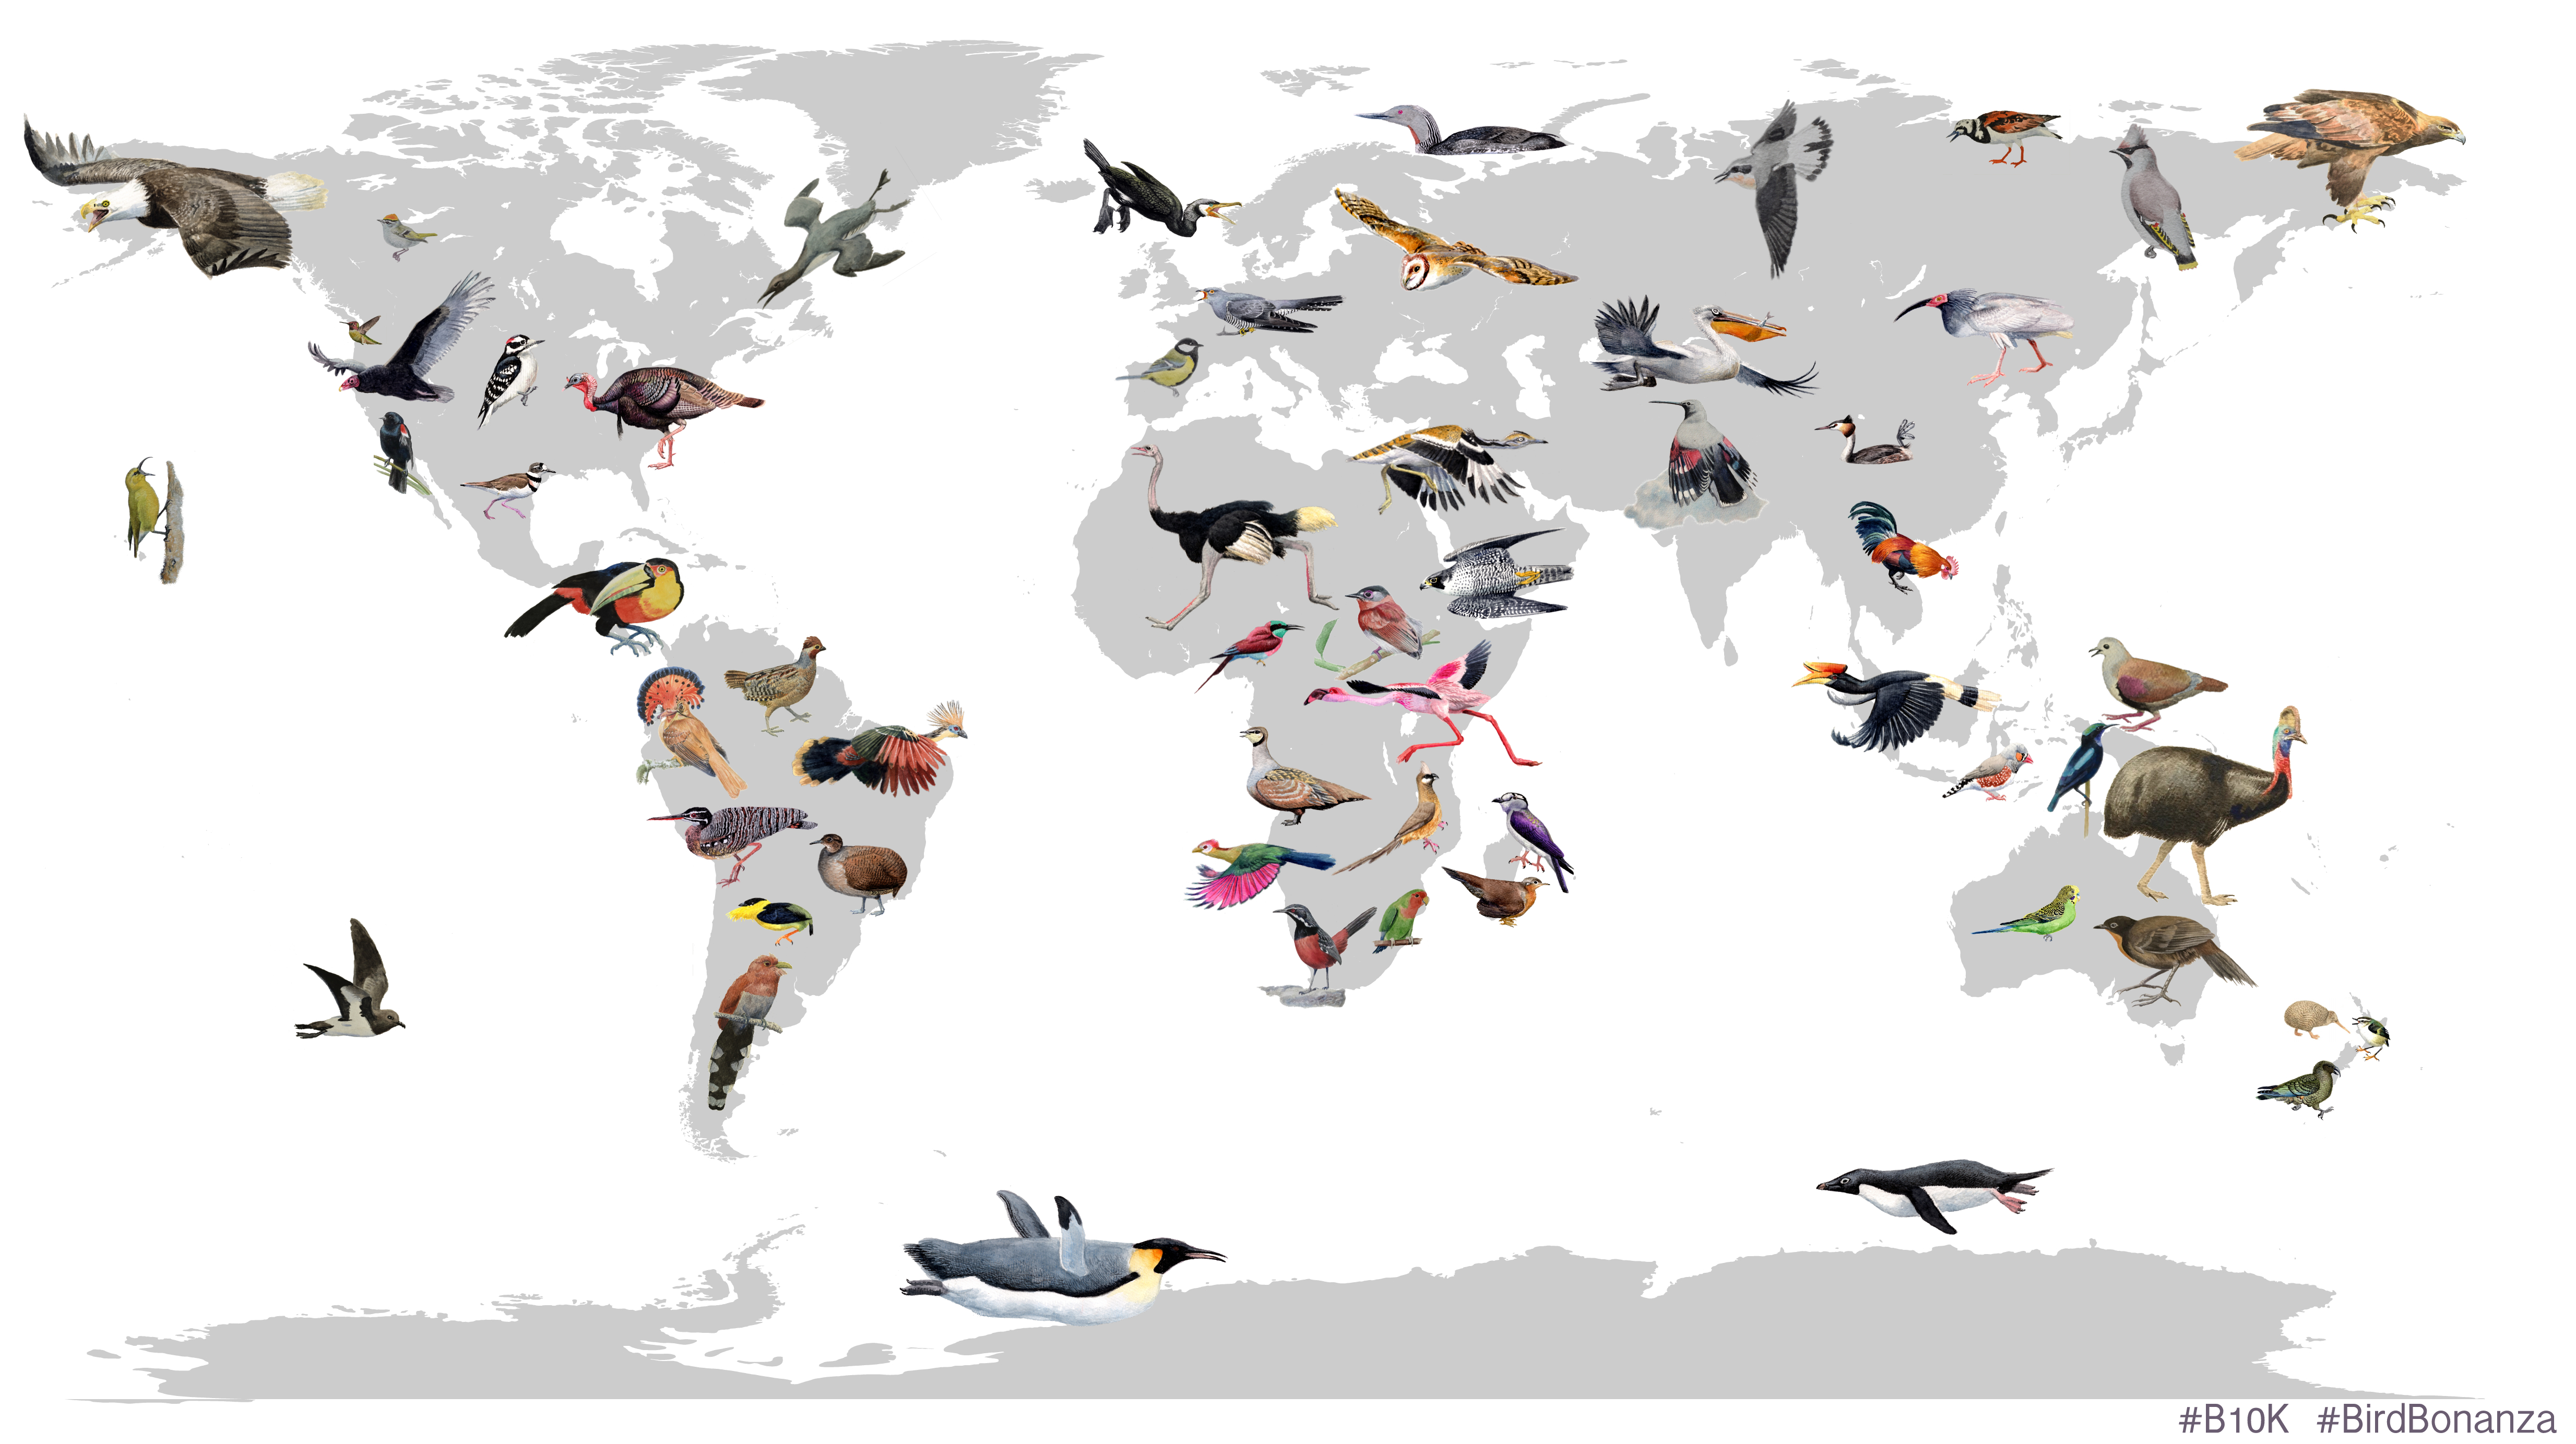 Collage of birds emerging in different parts of the world, by Josefin Stiller